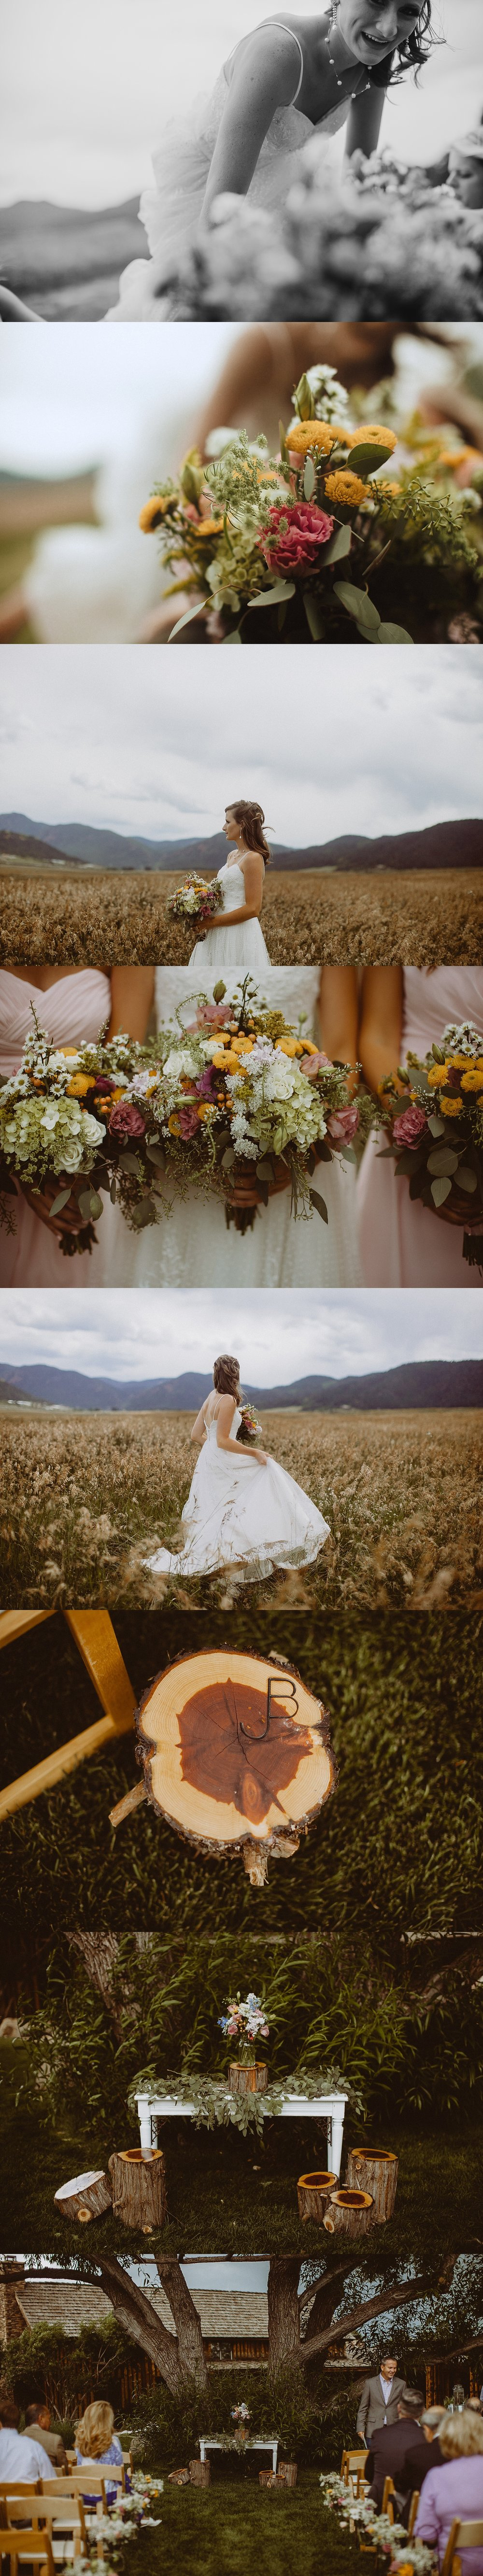 Unique DIY Colorado Rocky Mountain Wedding (25 of 105).jpg